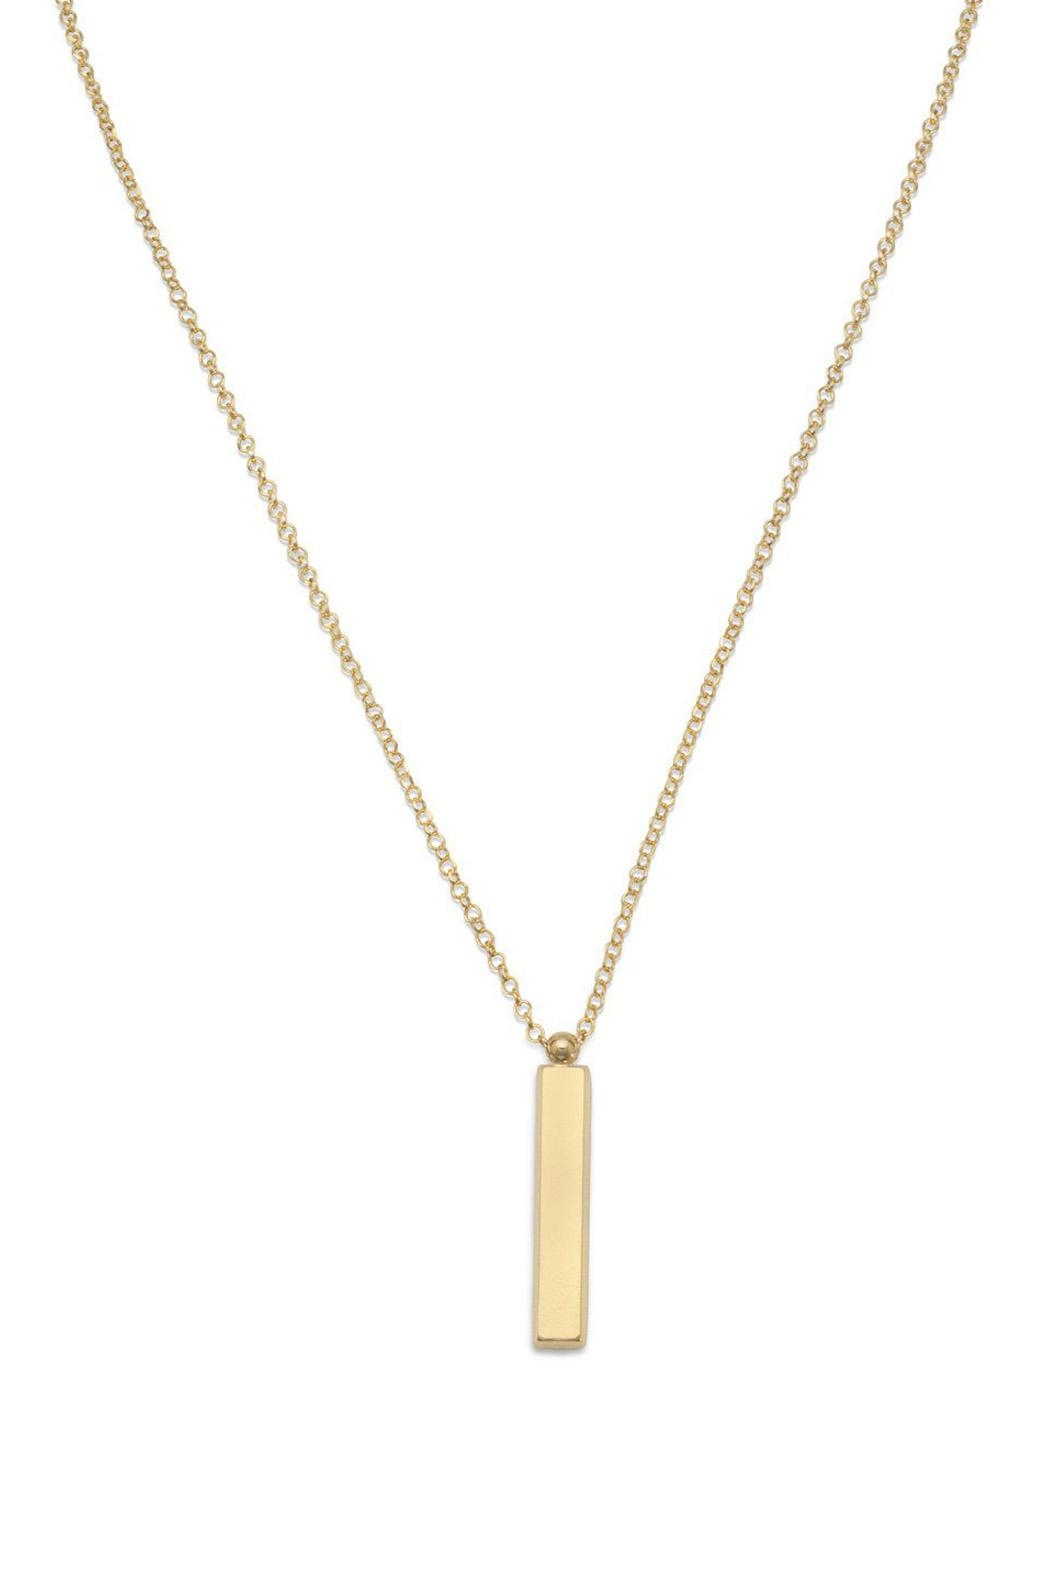 Wild Lilies Jewelry  Vertical Bar Necklace - Main Image